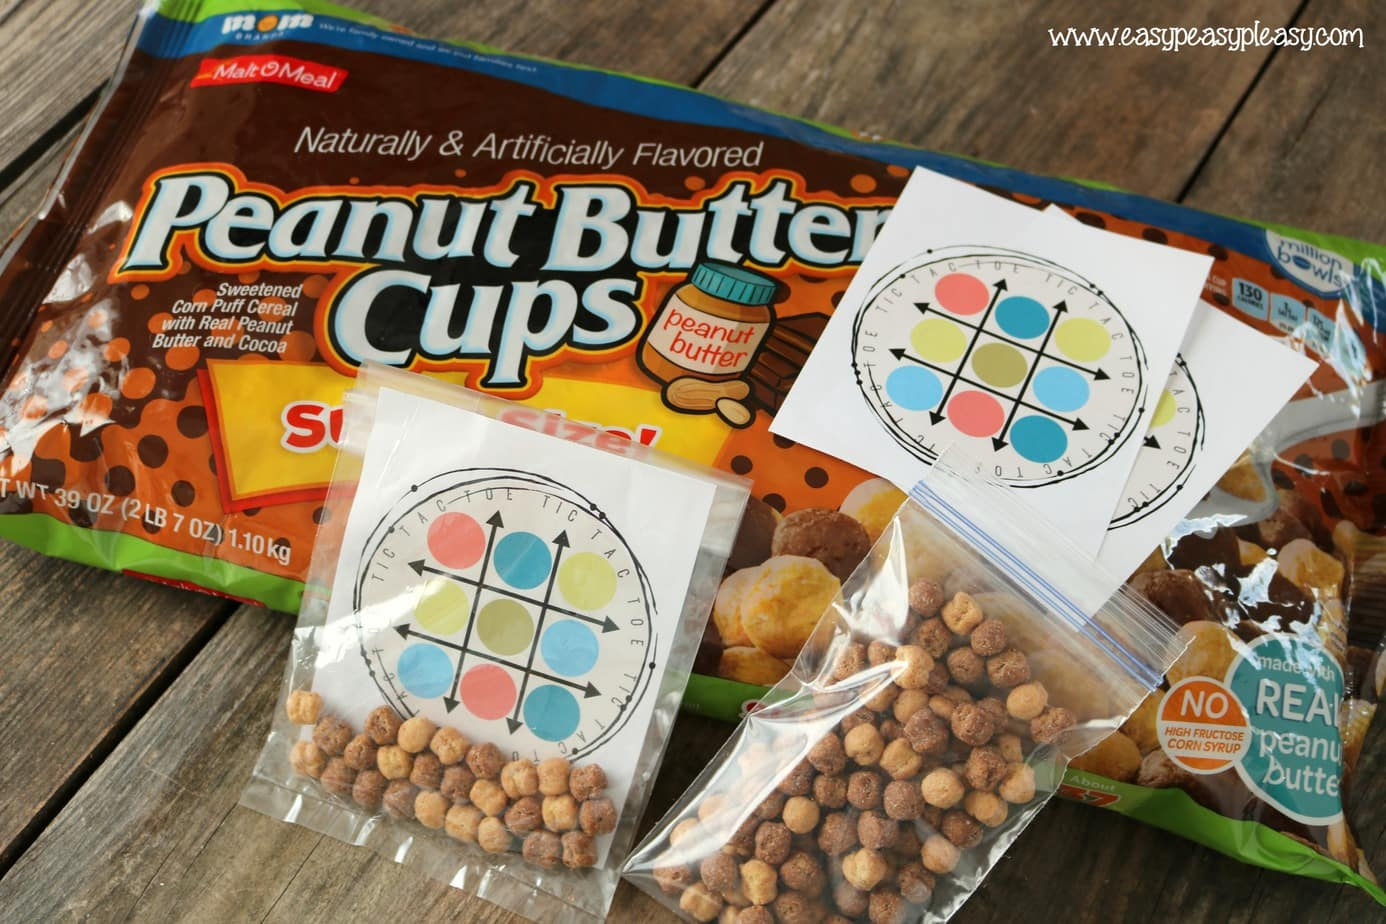 (AD) Peanut Butter Cups Cereal from Malt O Meal make the perfect X's and O's for this free printable tic tac toe lunchbox game.